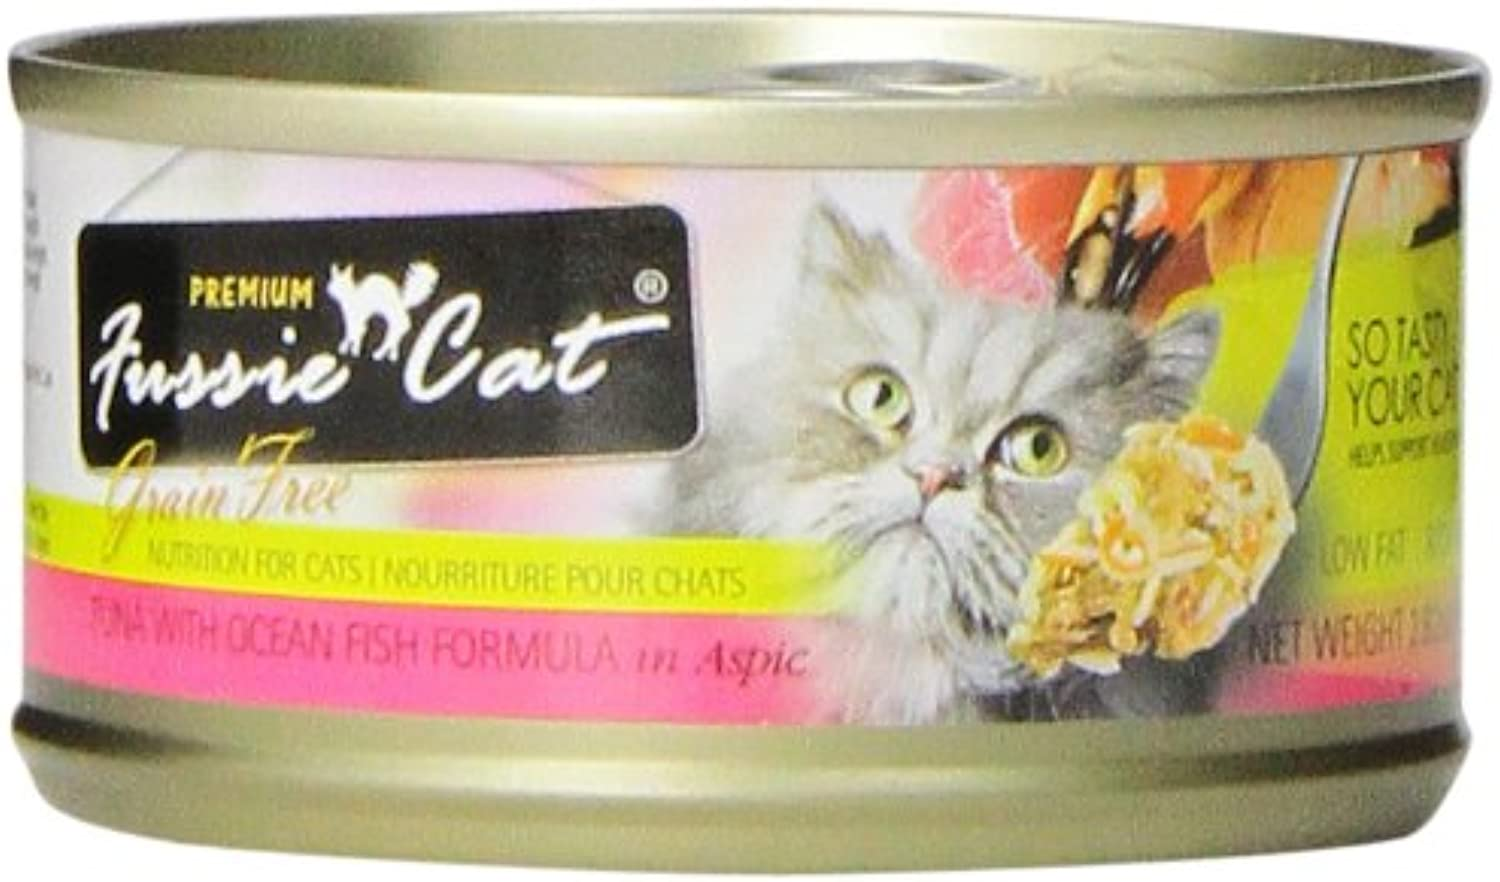 Fussie Cat Premium Tuna with Ocean Fish Canned Cat Food , 2.82oz. Cans, Pack of 24